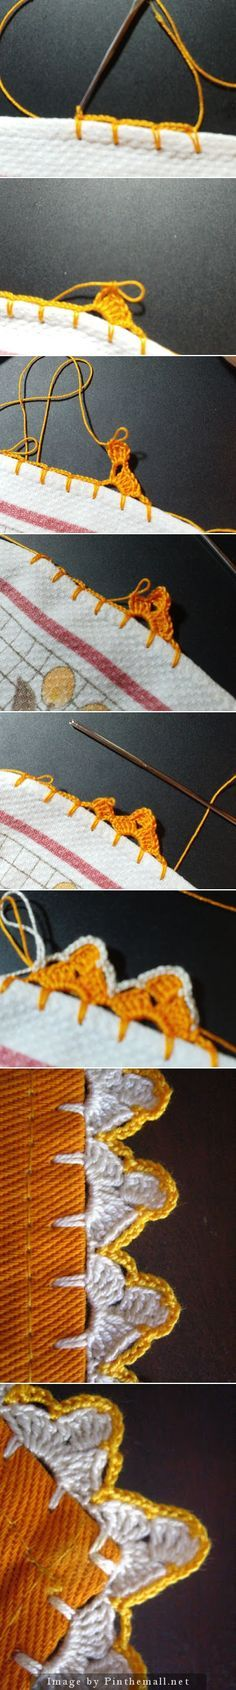 Another corcheted edging on fabric ~~